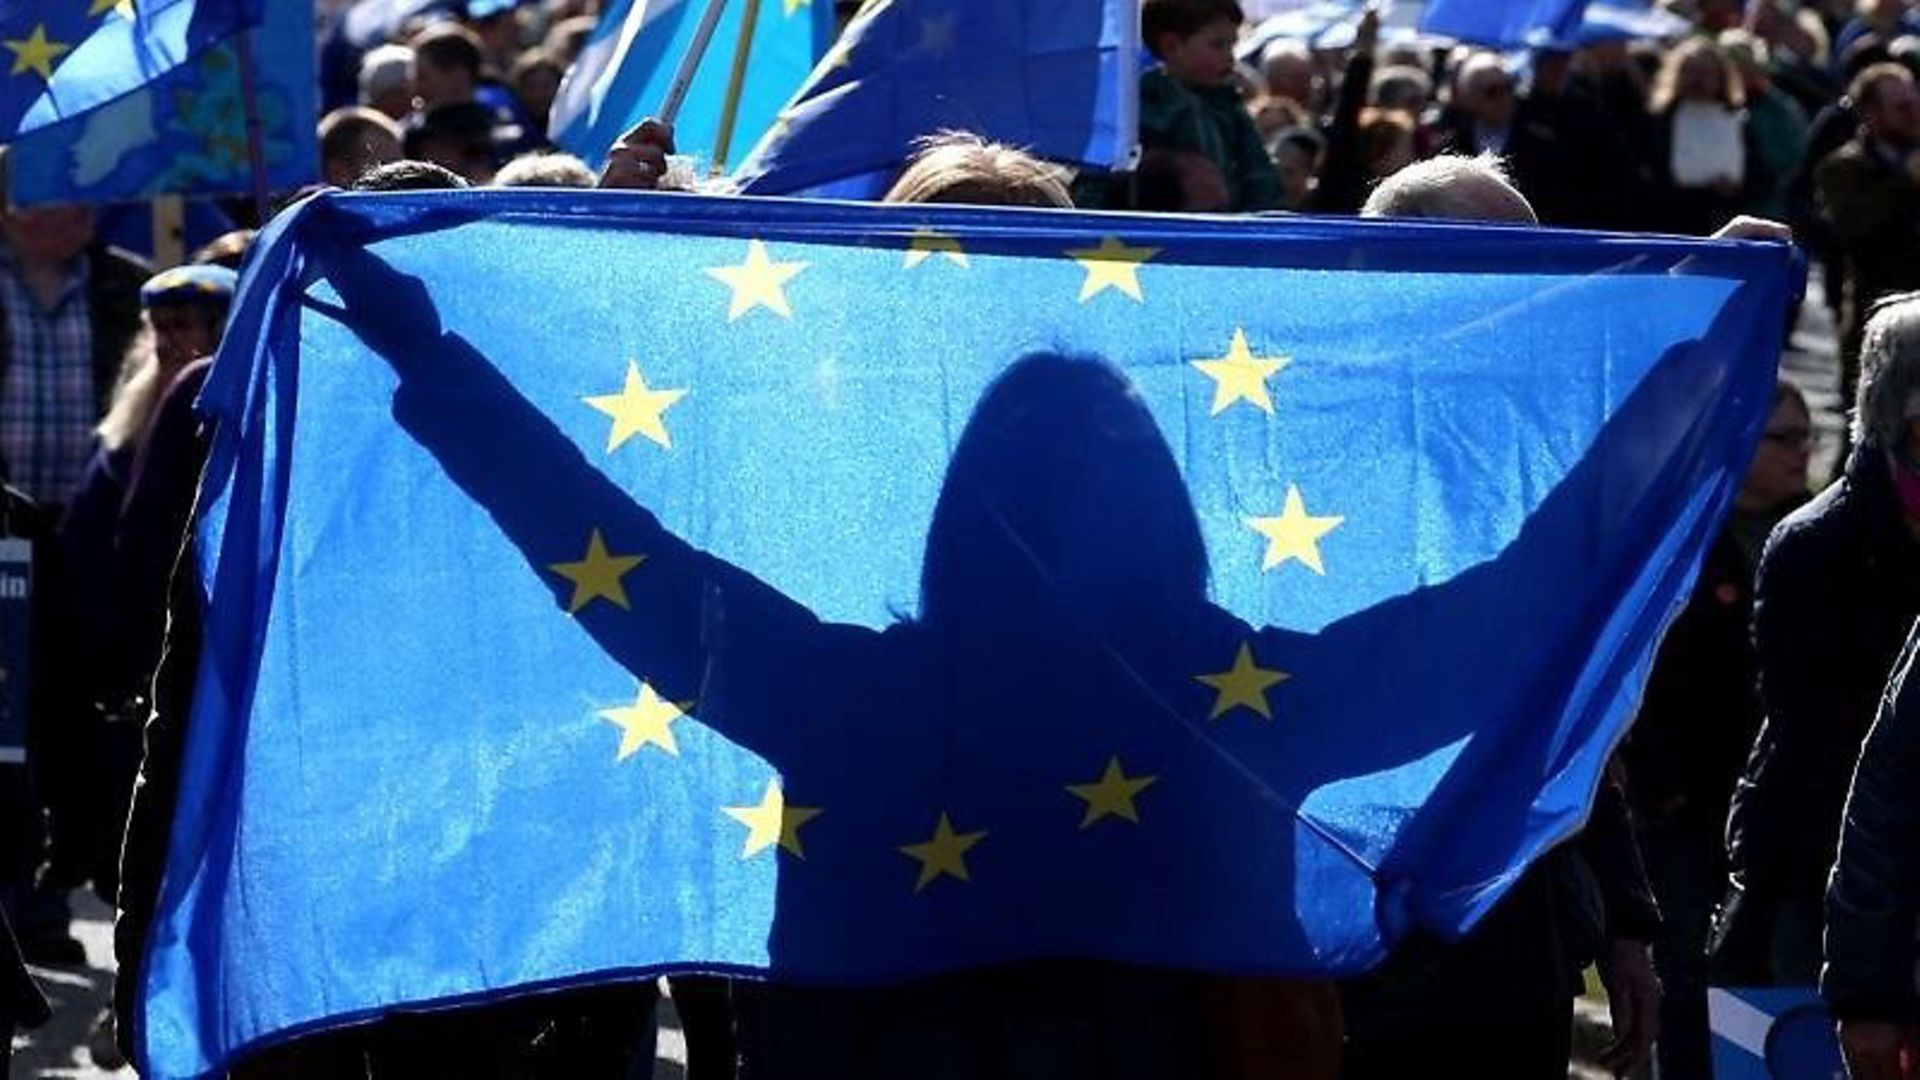 European flags symbolising freedom of movement - Credit: PA Images